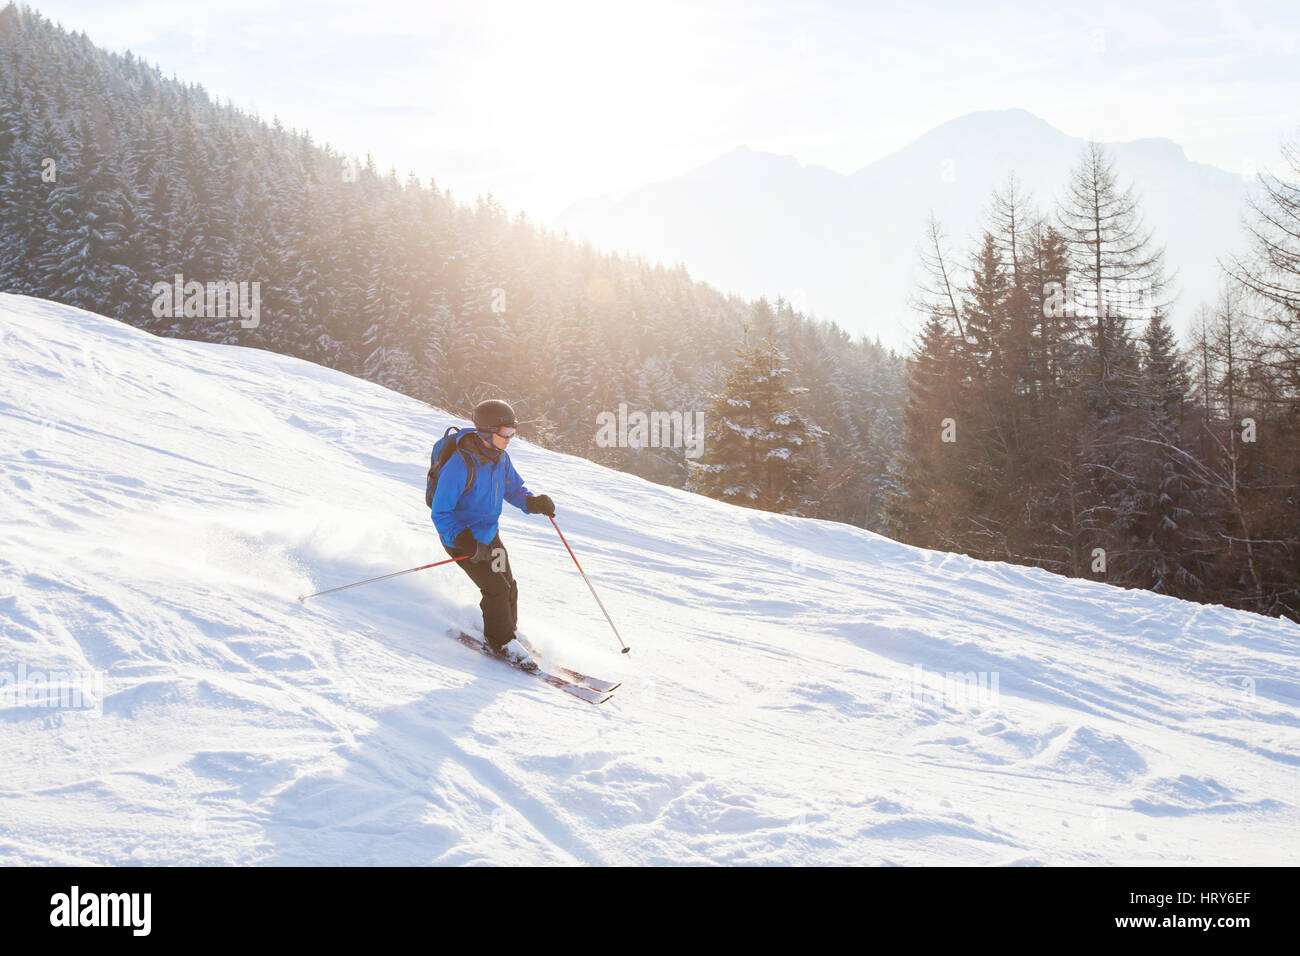 skier in sunset mountains, downhill skiing - Stock Image